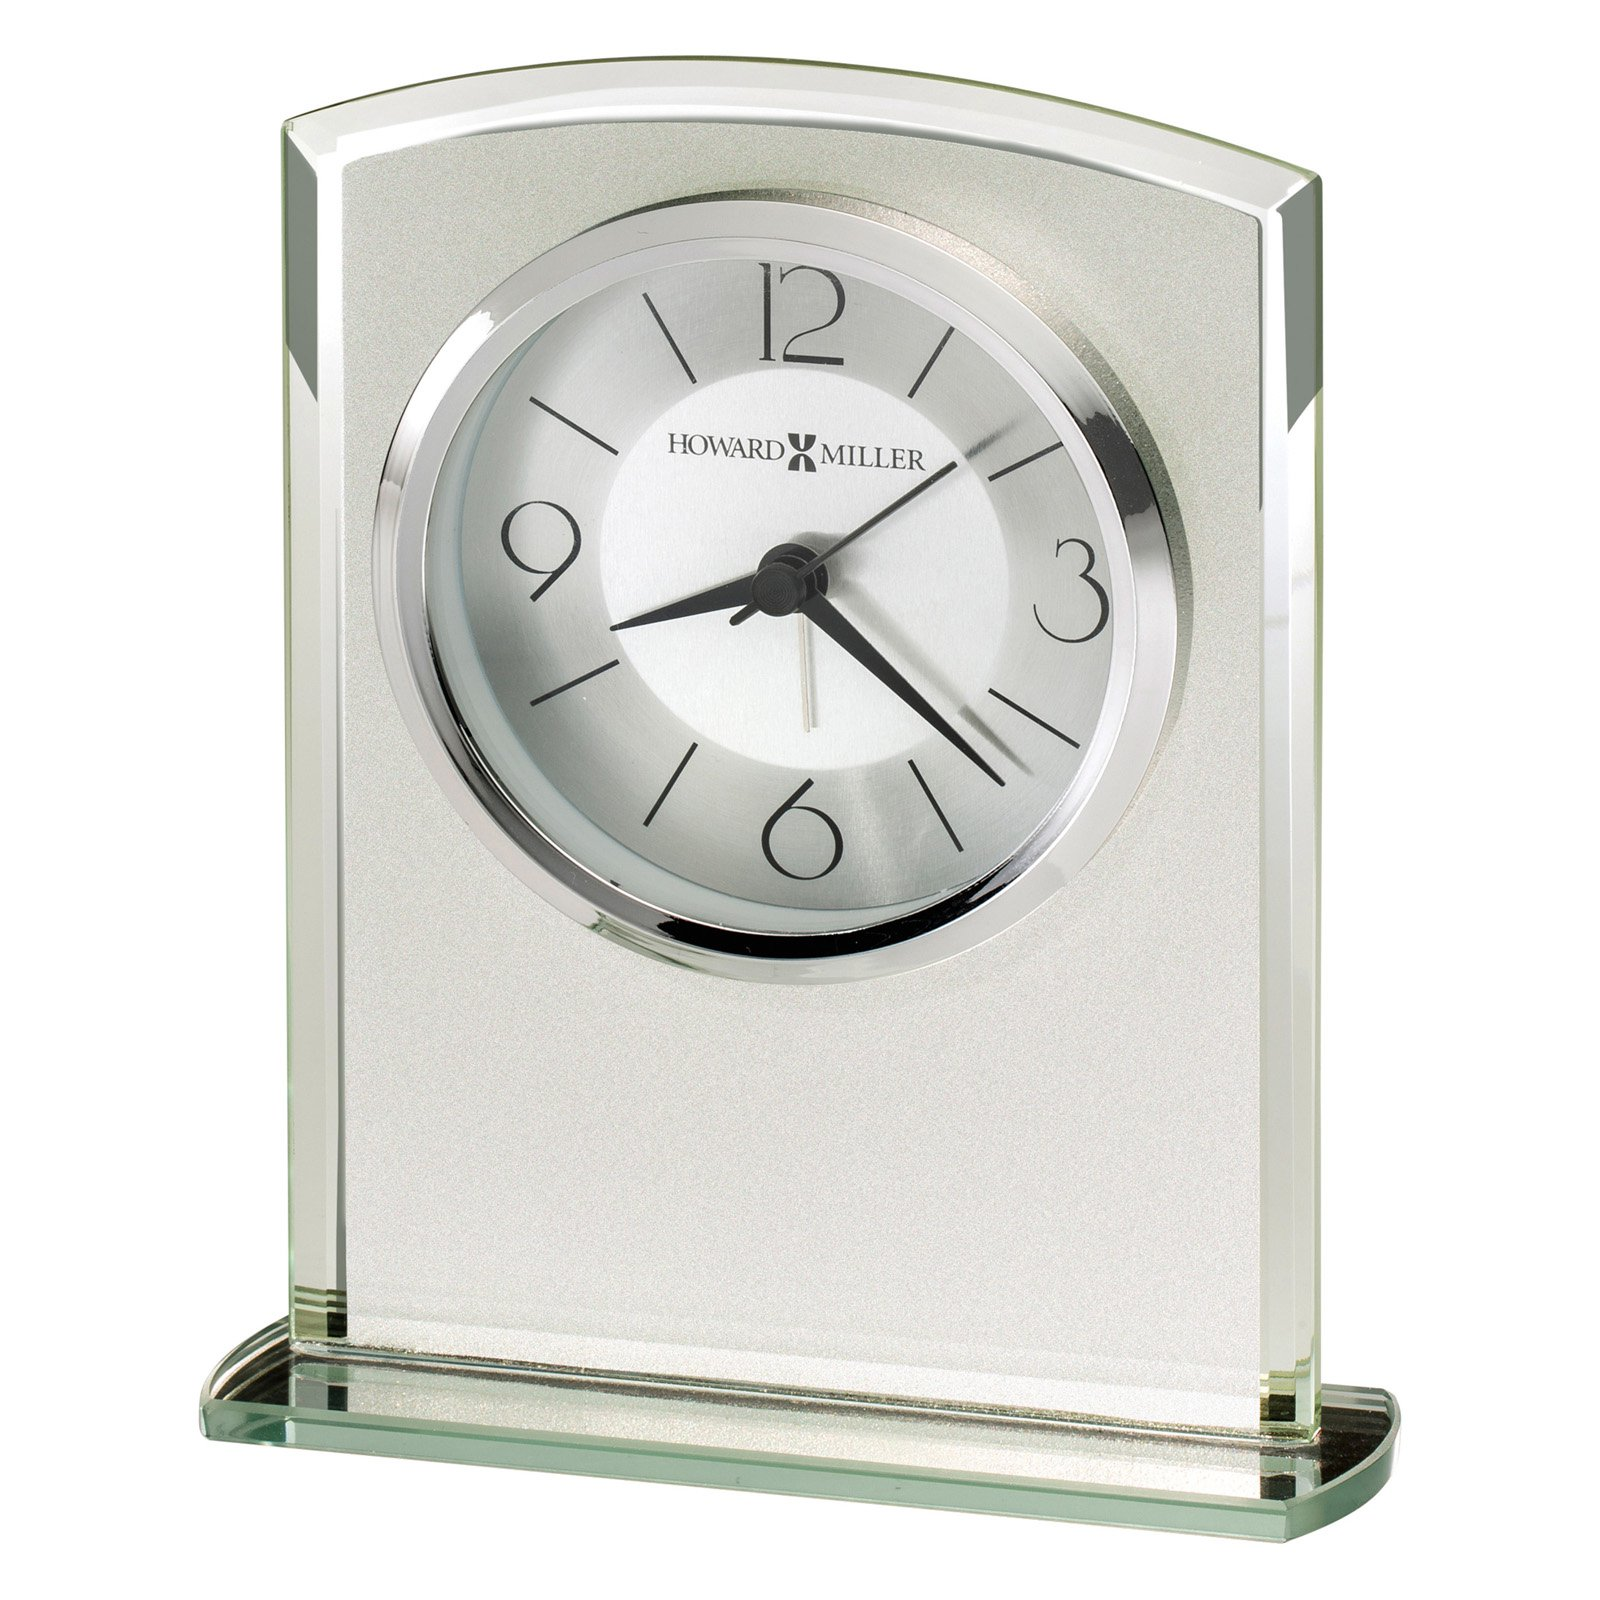 Howard Miller Glamour Desktop Clock